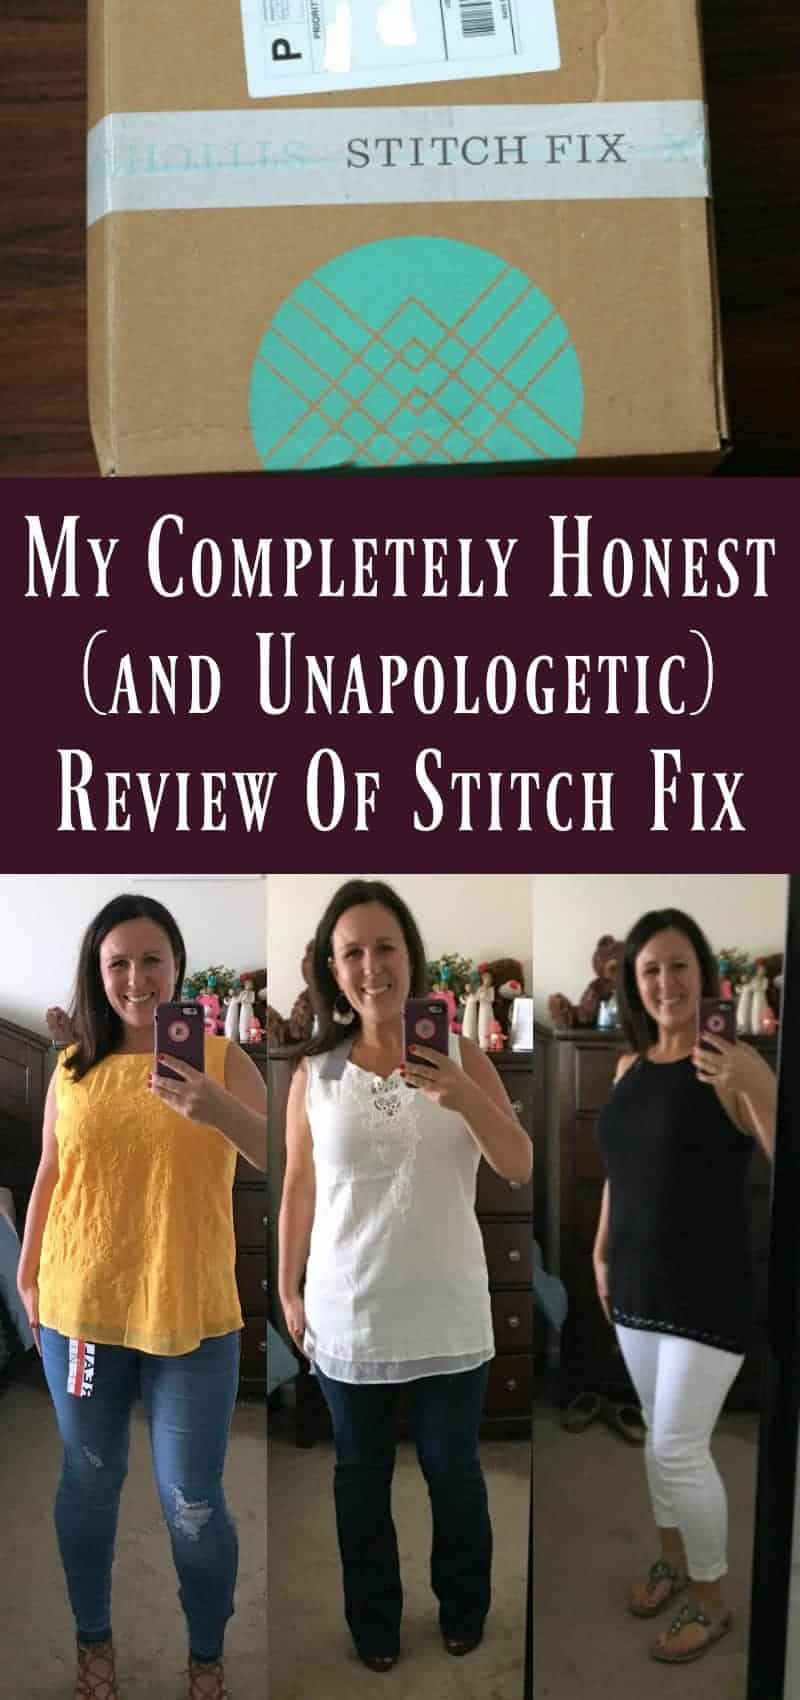 7748162a712 I will receive a small commission if you decide to use Stitch Fix. However